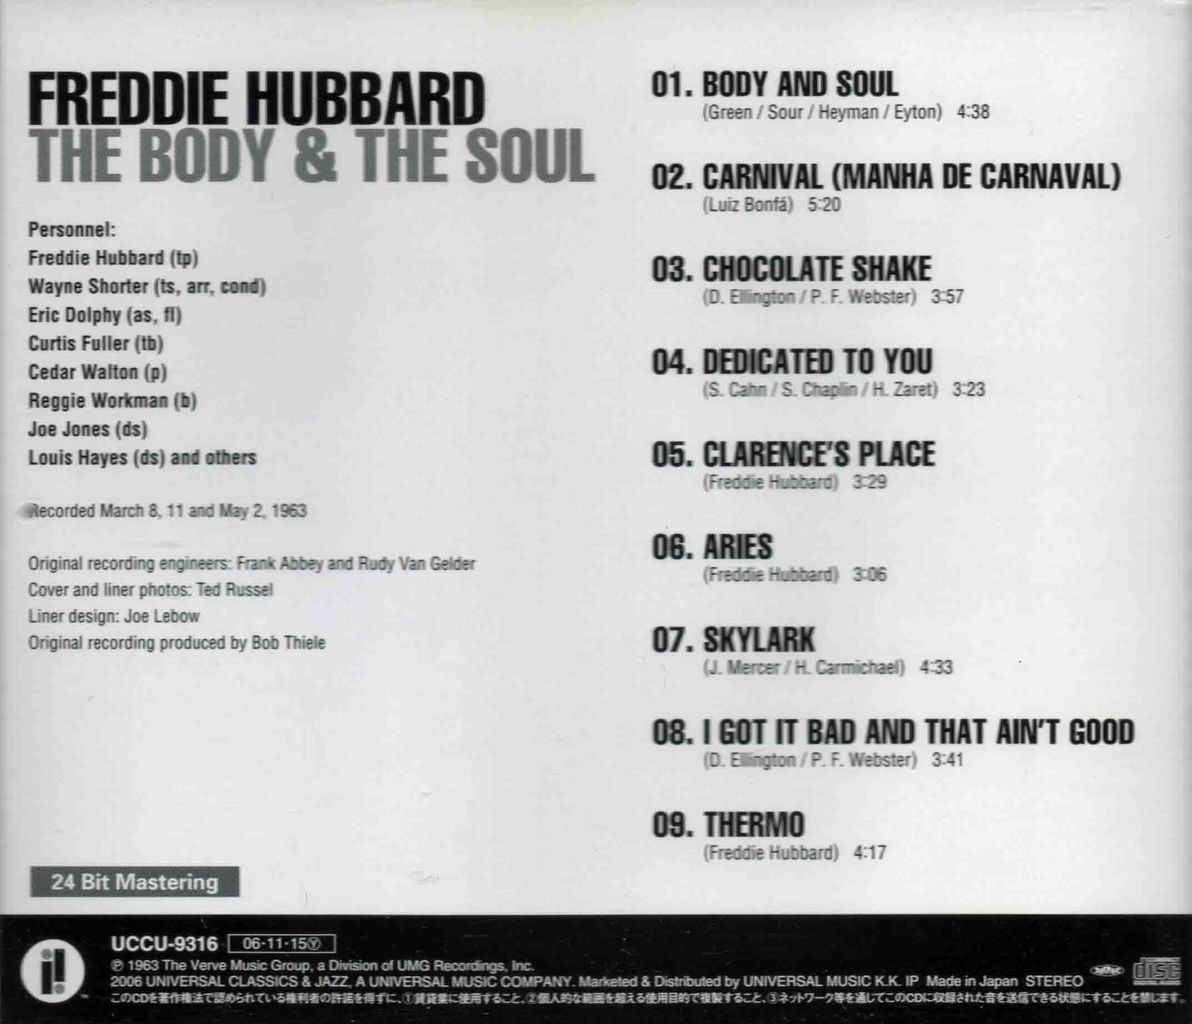 THE BODY & THE SOUL-2